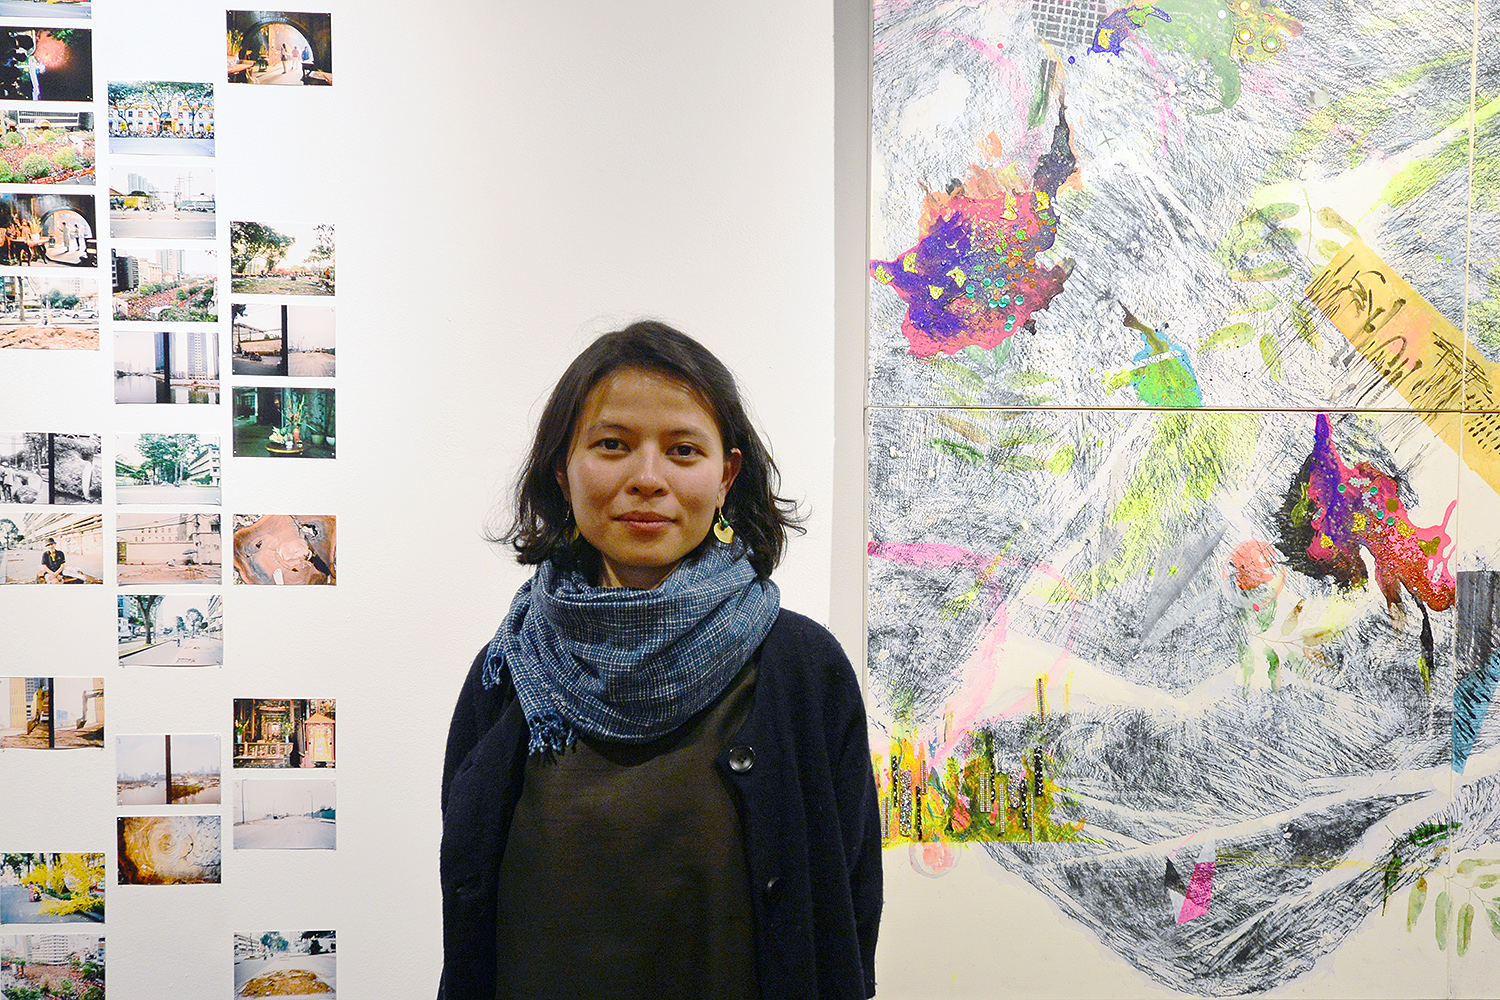 On March 29, Vietnamese artist Lêna Bùi '07 spoke to gallery goers at the opening reception of her exhibit, Proliferation at the College of East Asian Studies. In Proliferation, Bùi draws on her context of living in a rapidly changing country. Her abstract paintings, photographs, and candid video broadly examine the less obvious effects of development on the socio-political and cultural fabrics of the country, and specifically dealing with people's negotiation with nature in various forms.